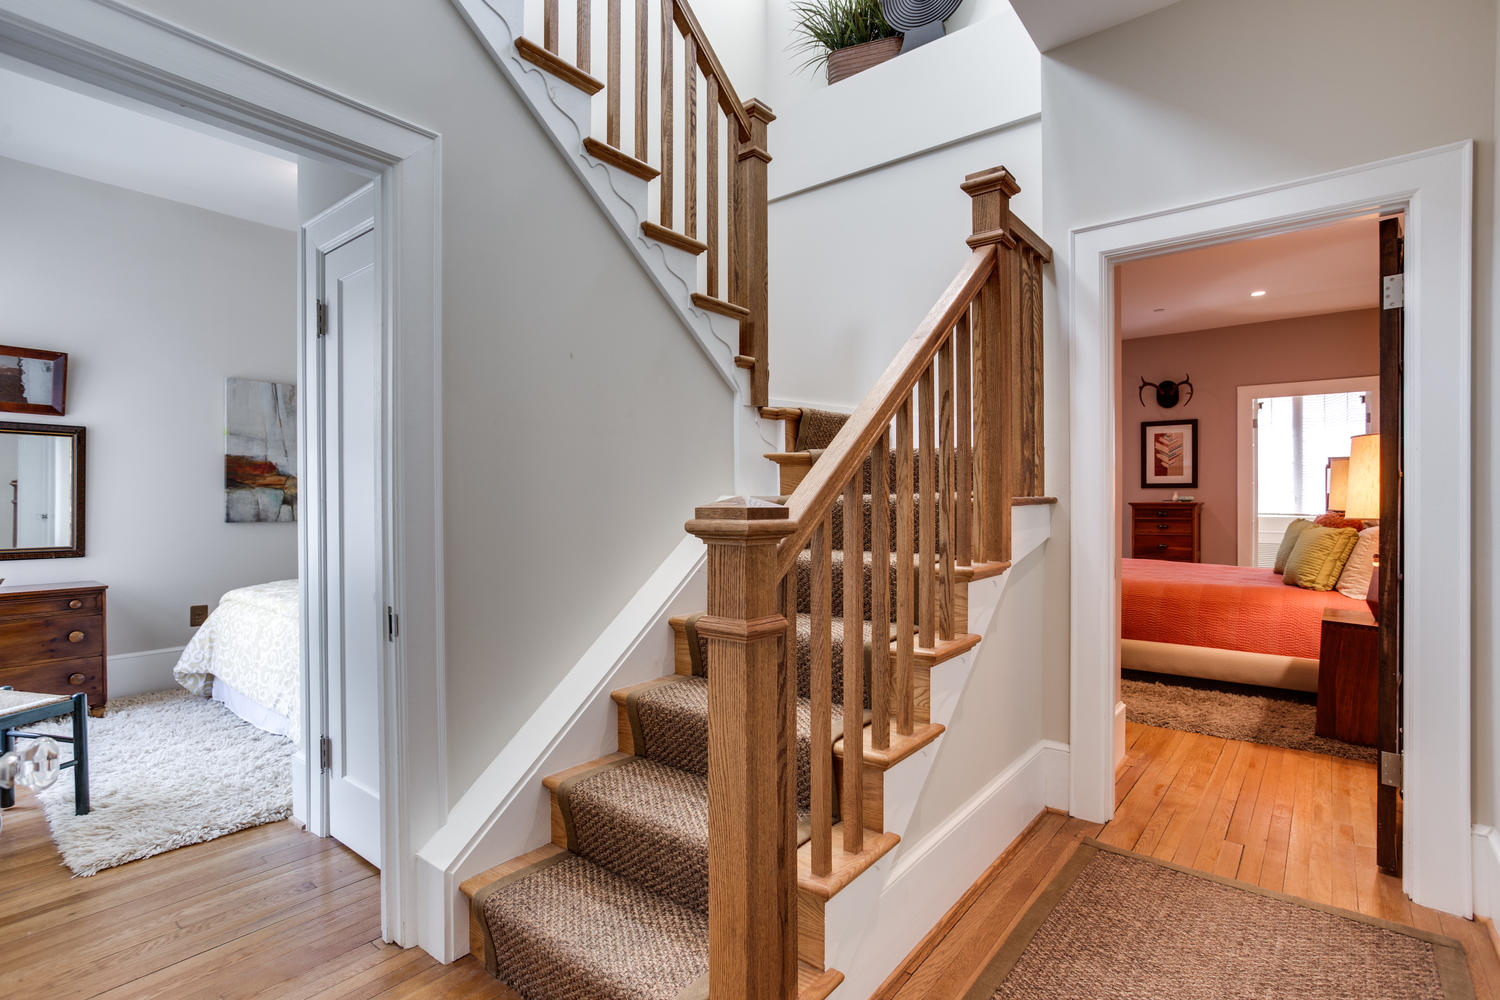 1632 16th St NW Unit 32-large-027-32-Staircase-1500x1000-72dpi.jpg